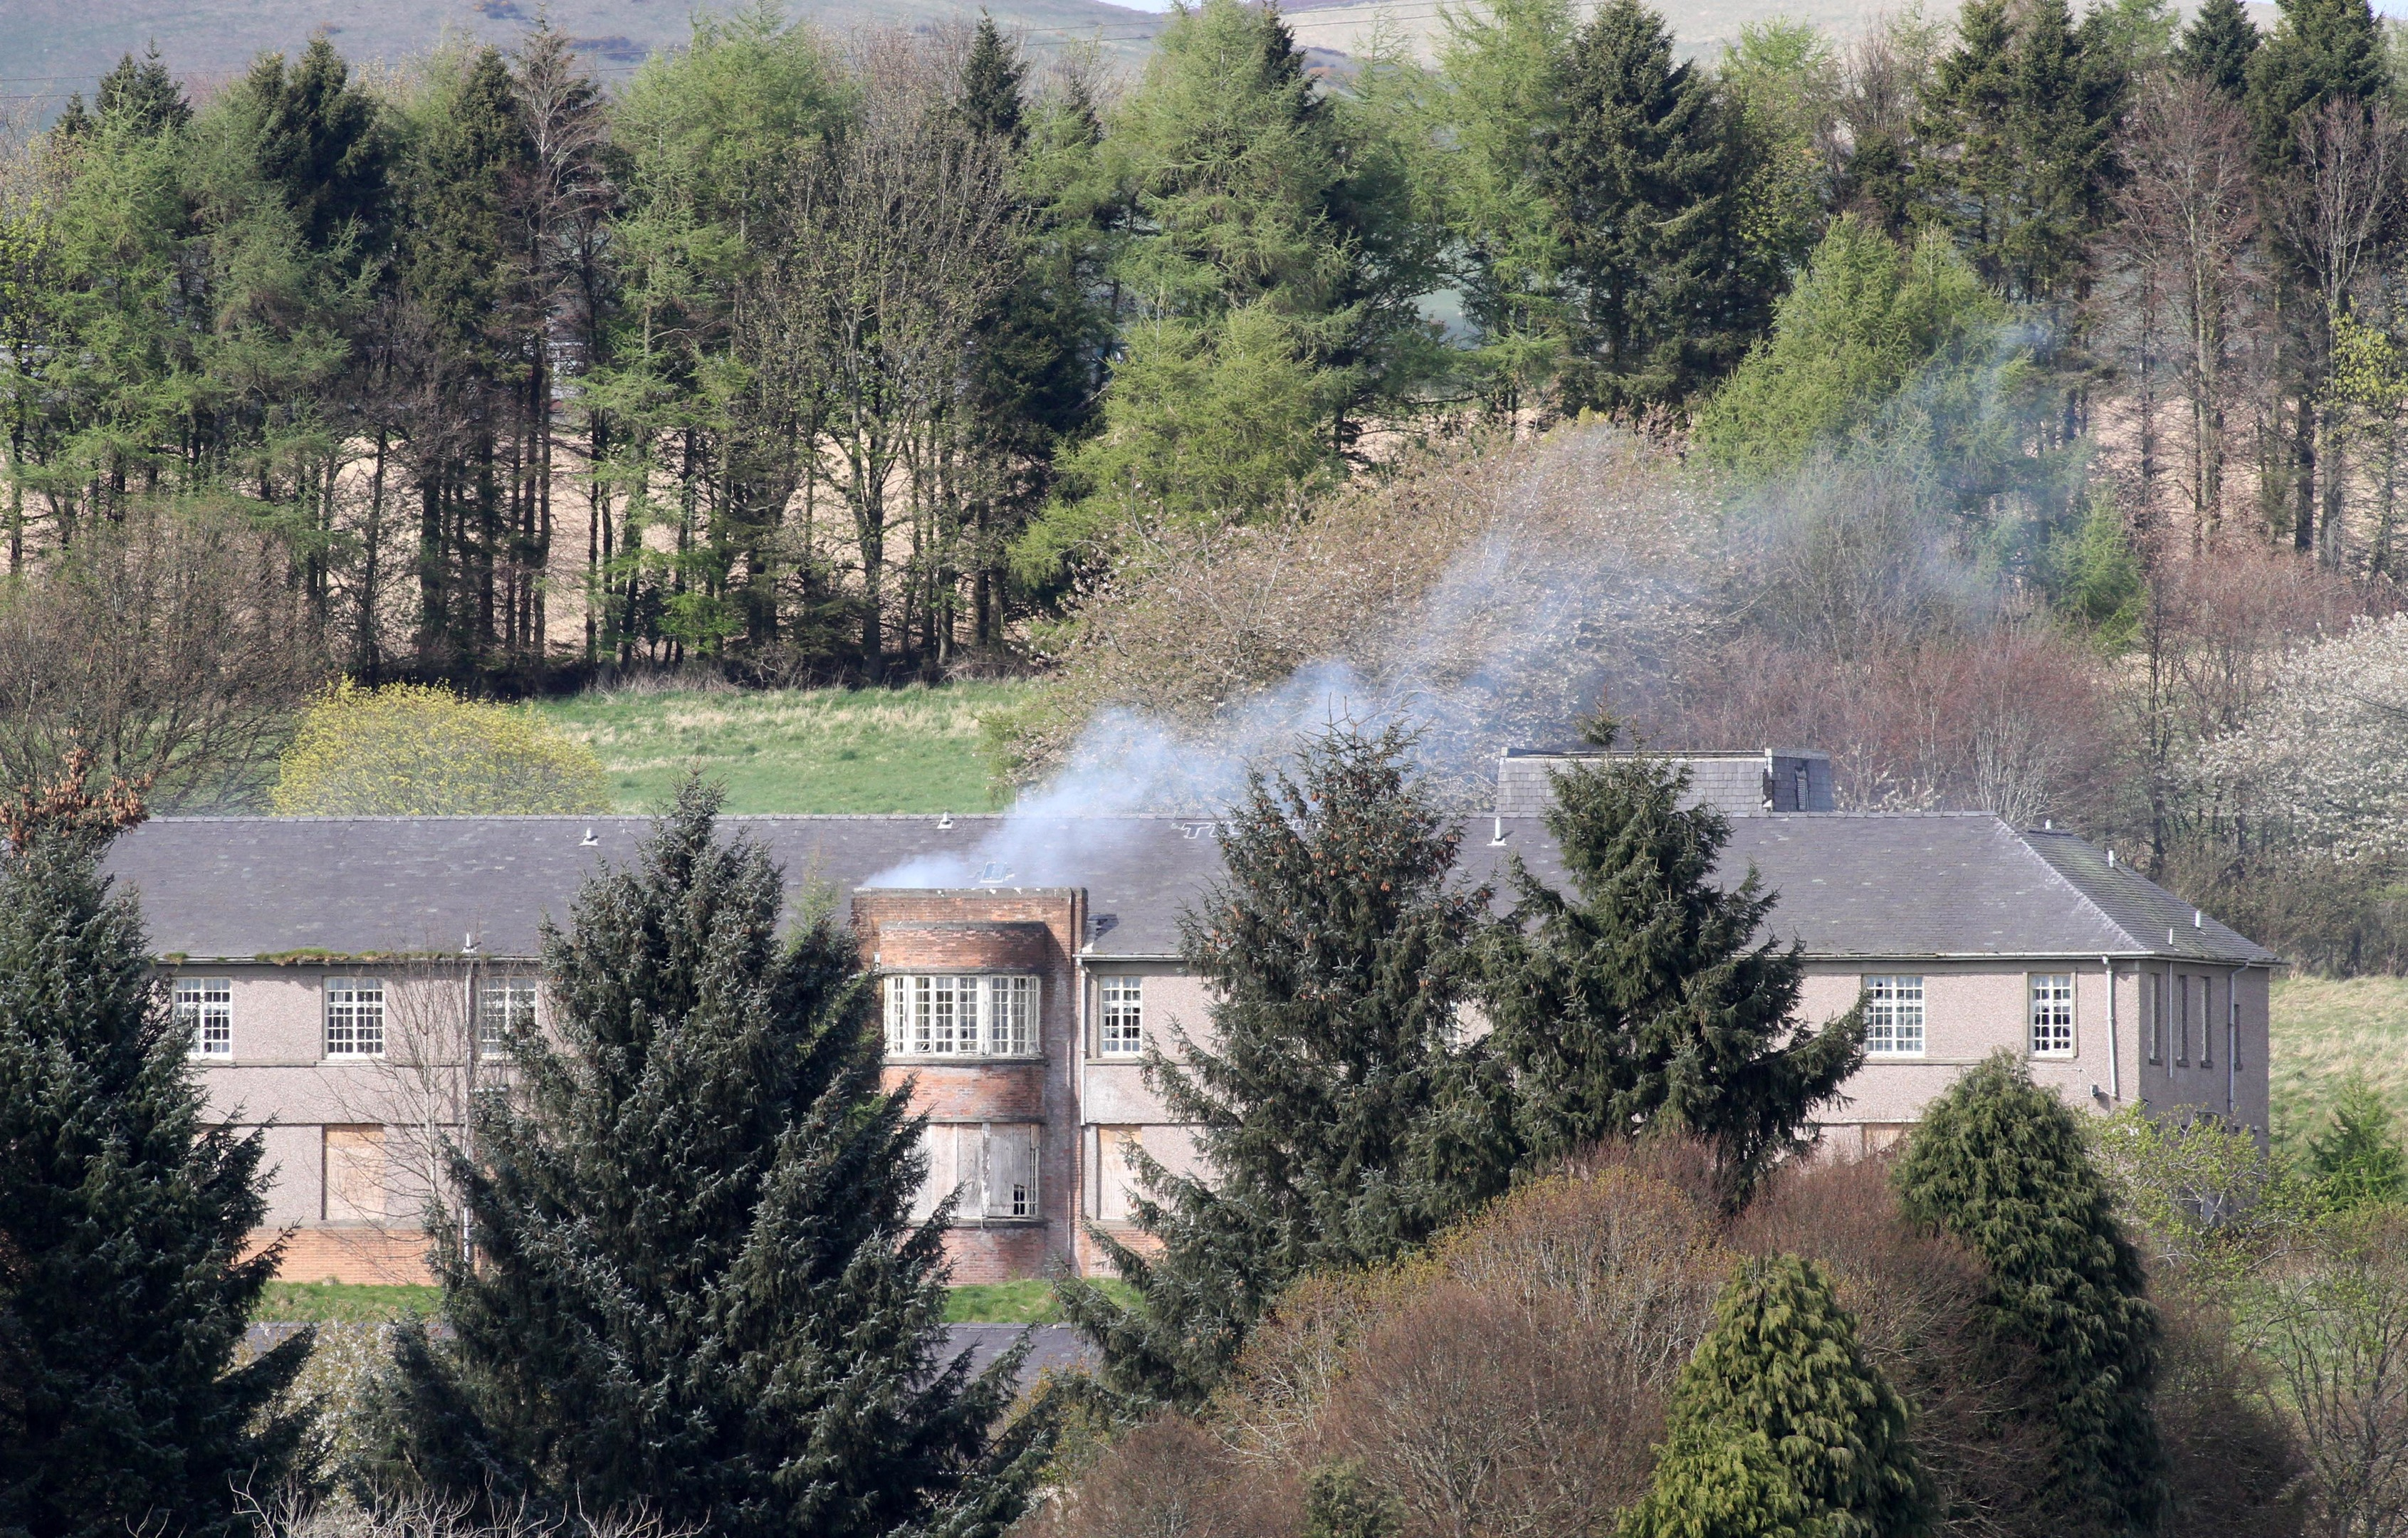 Smoke billows from the abandoned Strathmartine Hospital